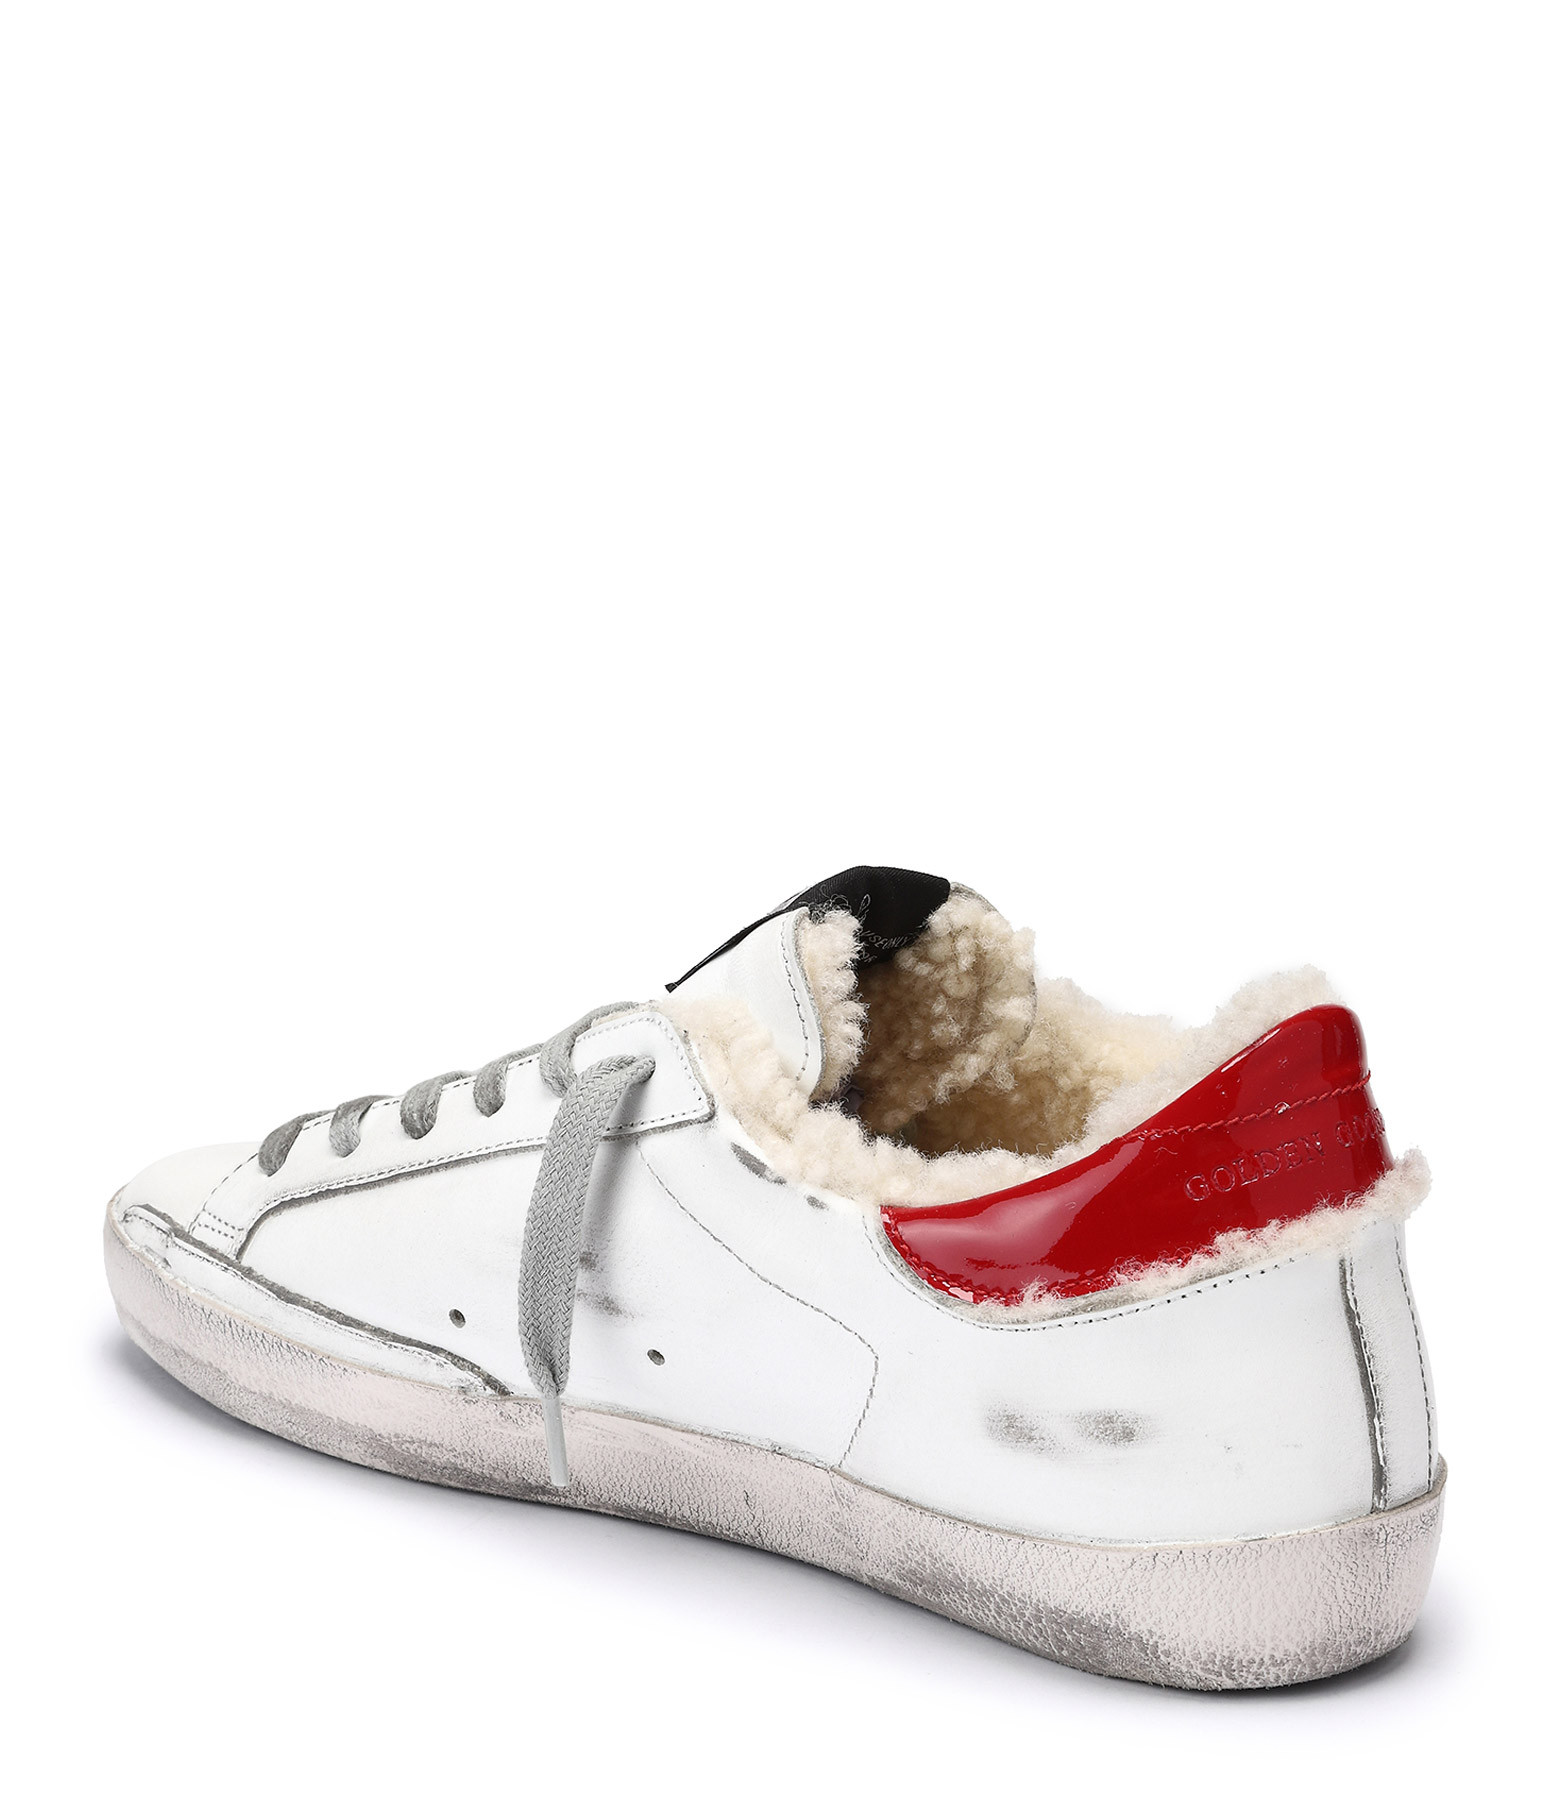 GOLDEN GOOSE - Baskets Superstar Léopard Mouton Cuir Blanc